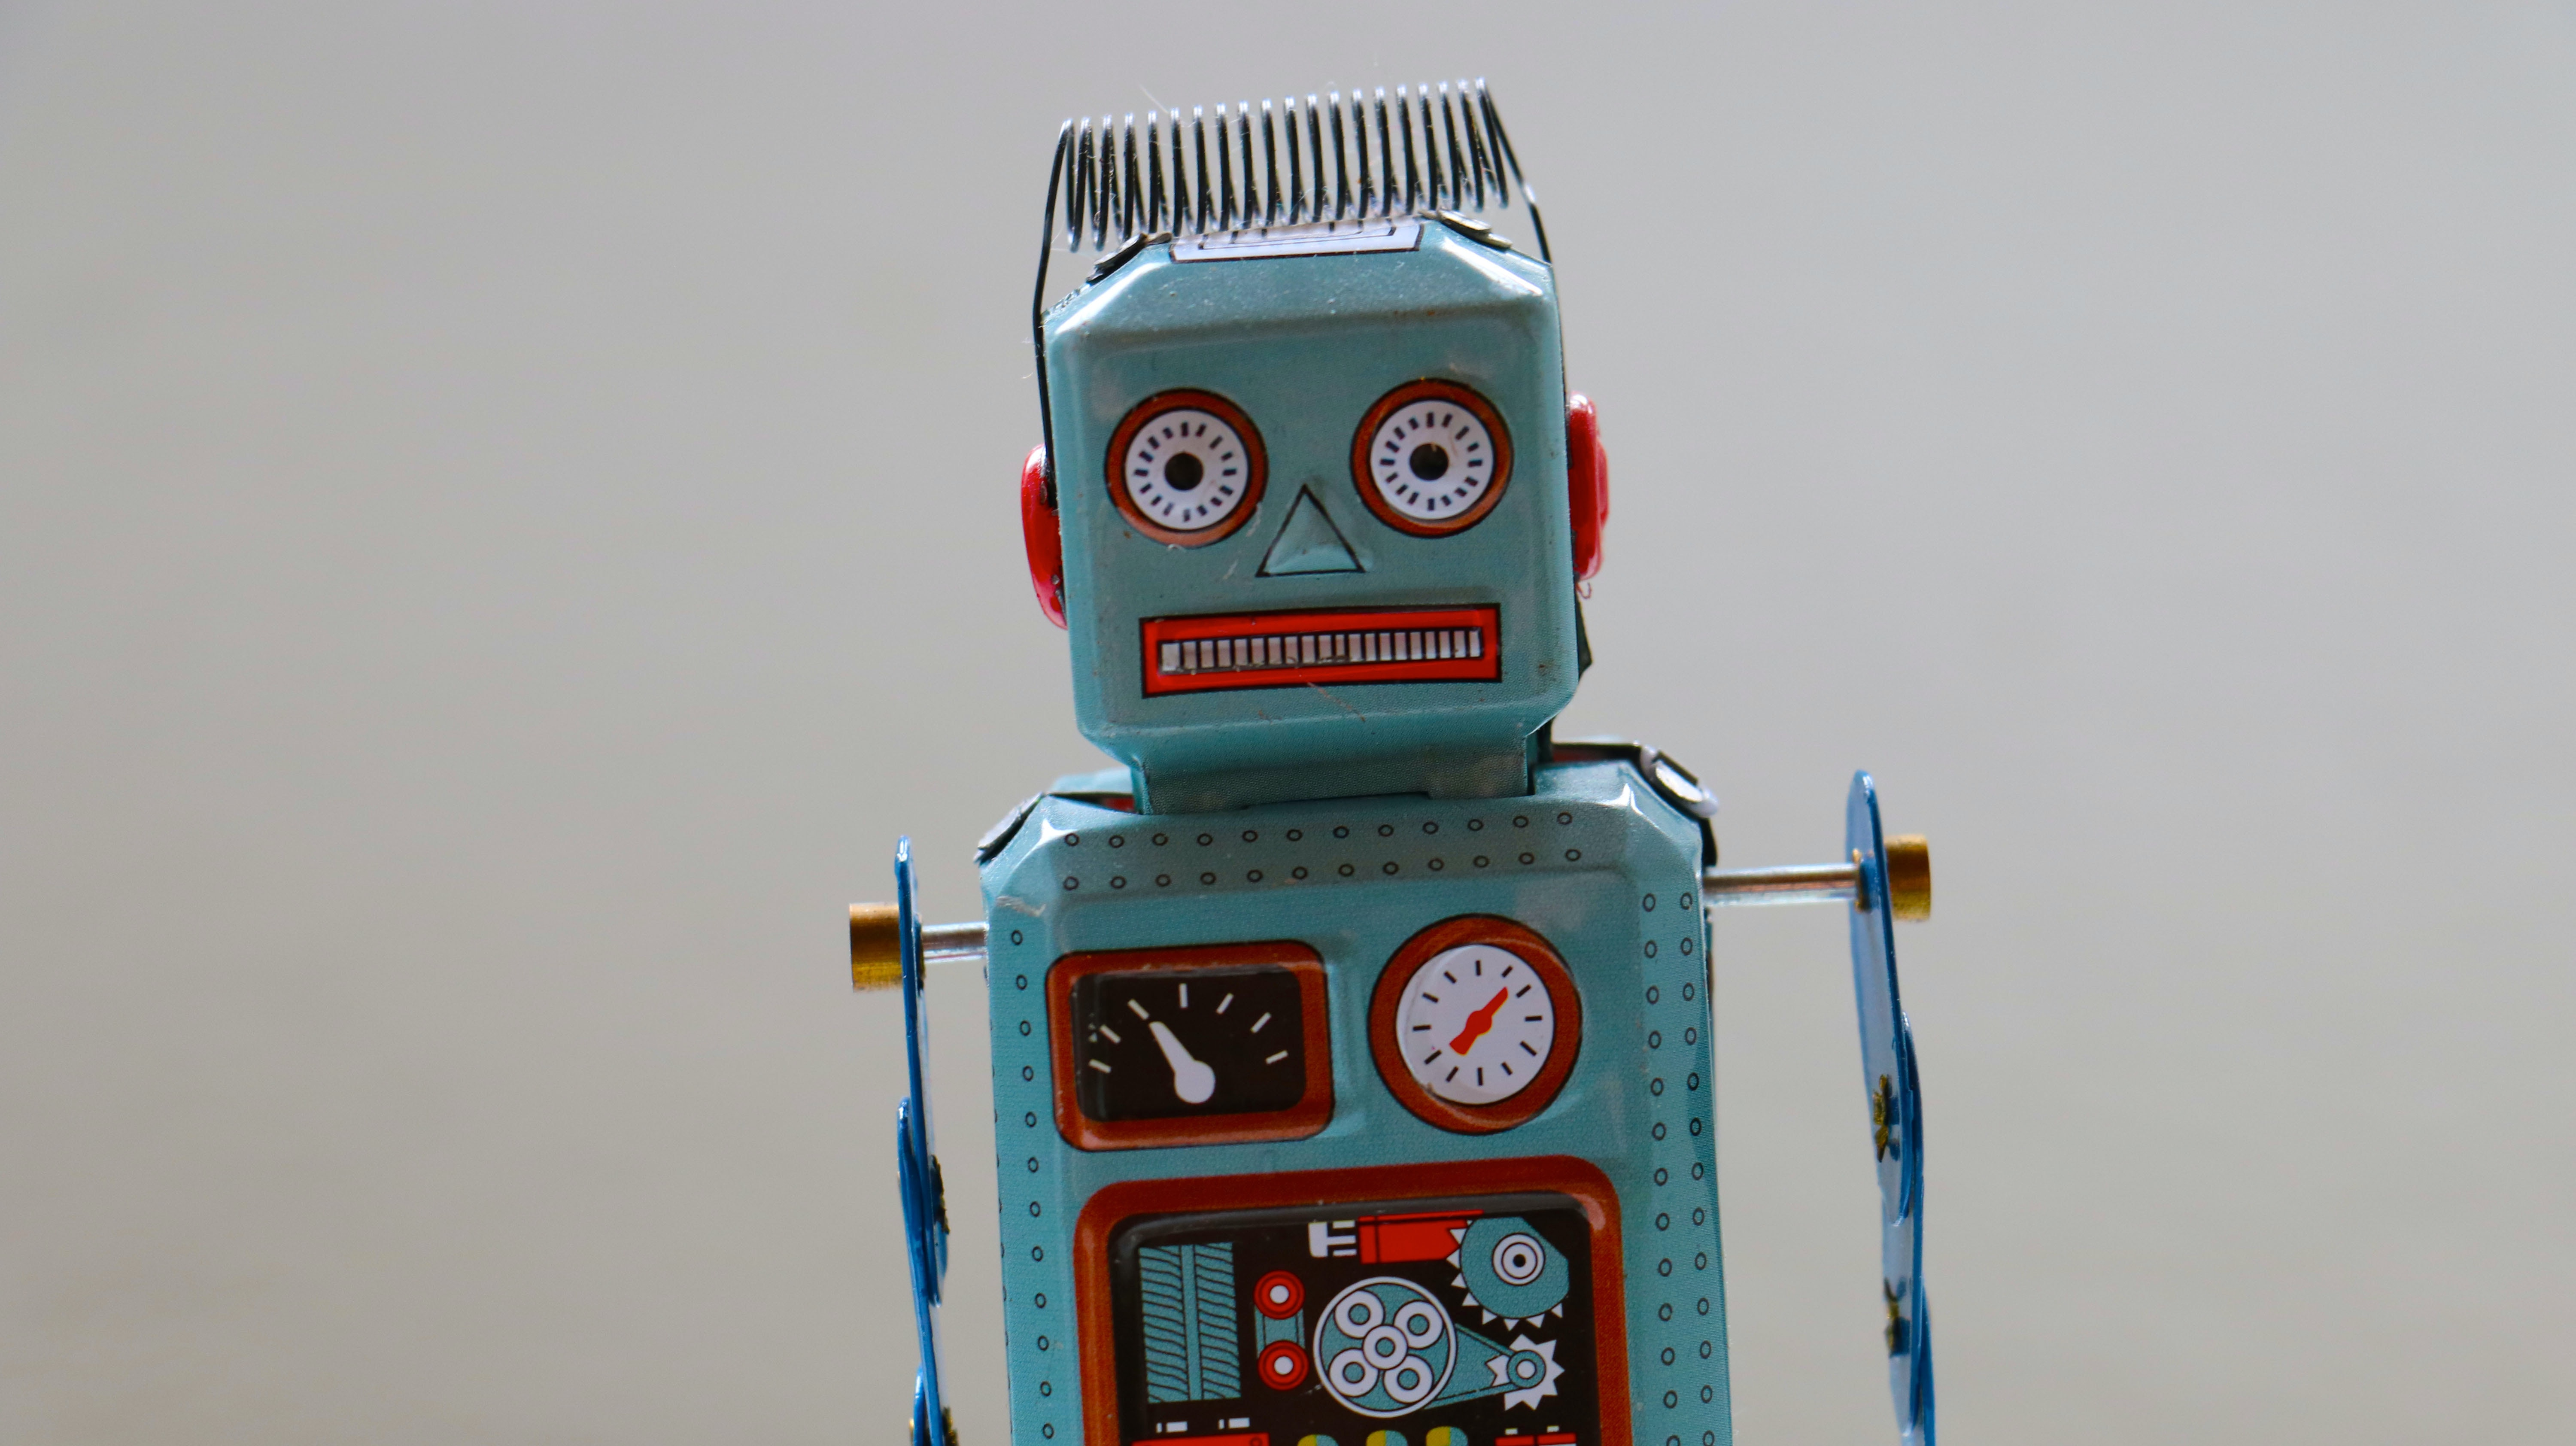 An old looking mechanical robot looking at you